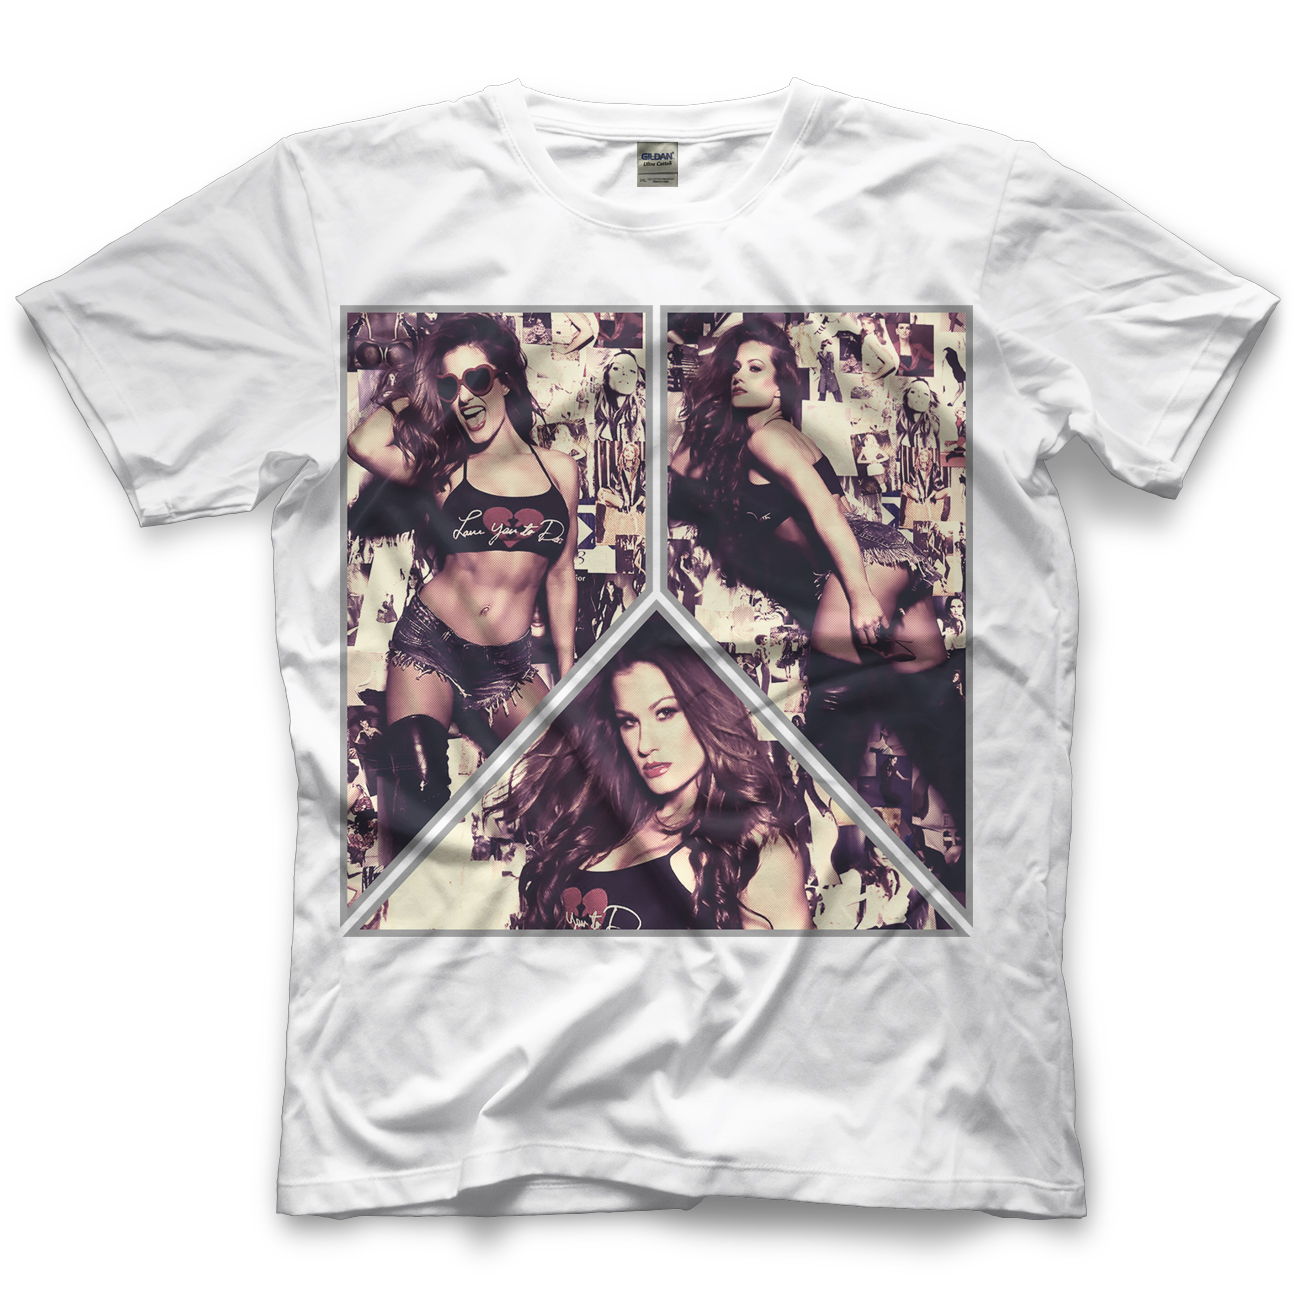 Brooke Adams Knockout T-shirt